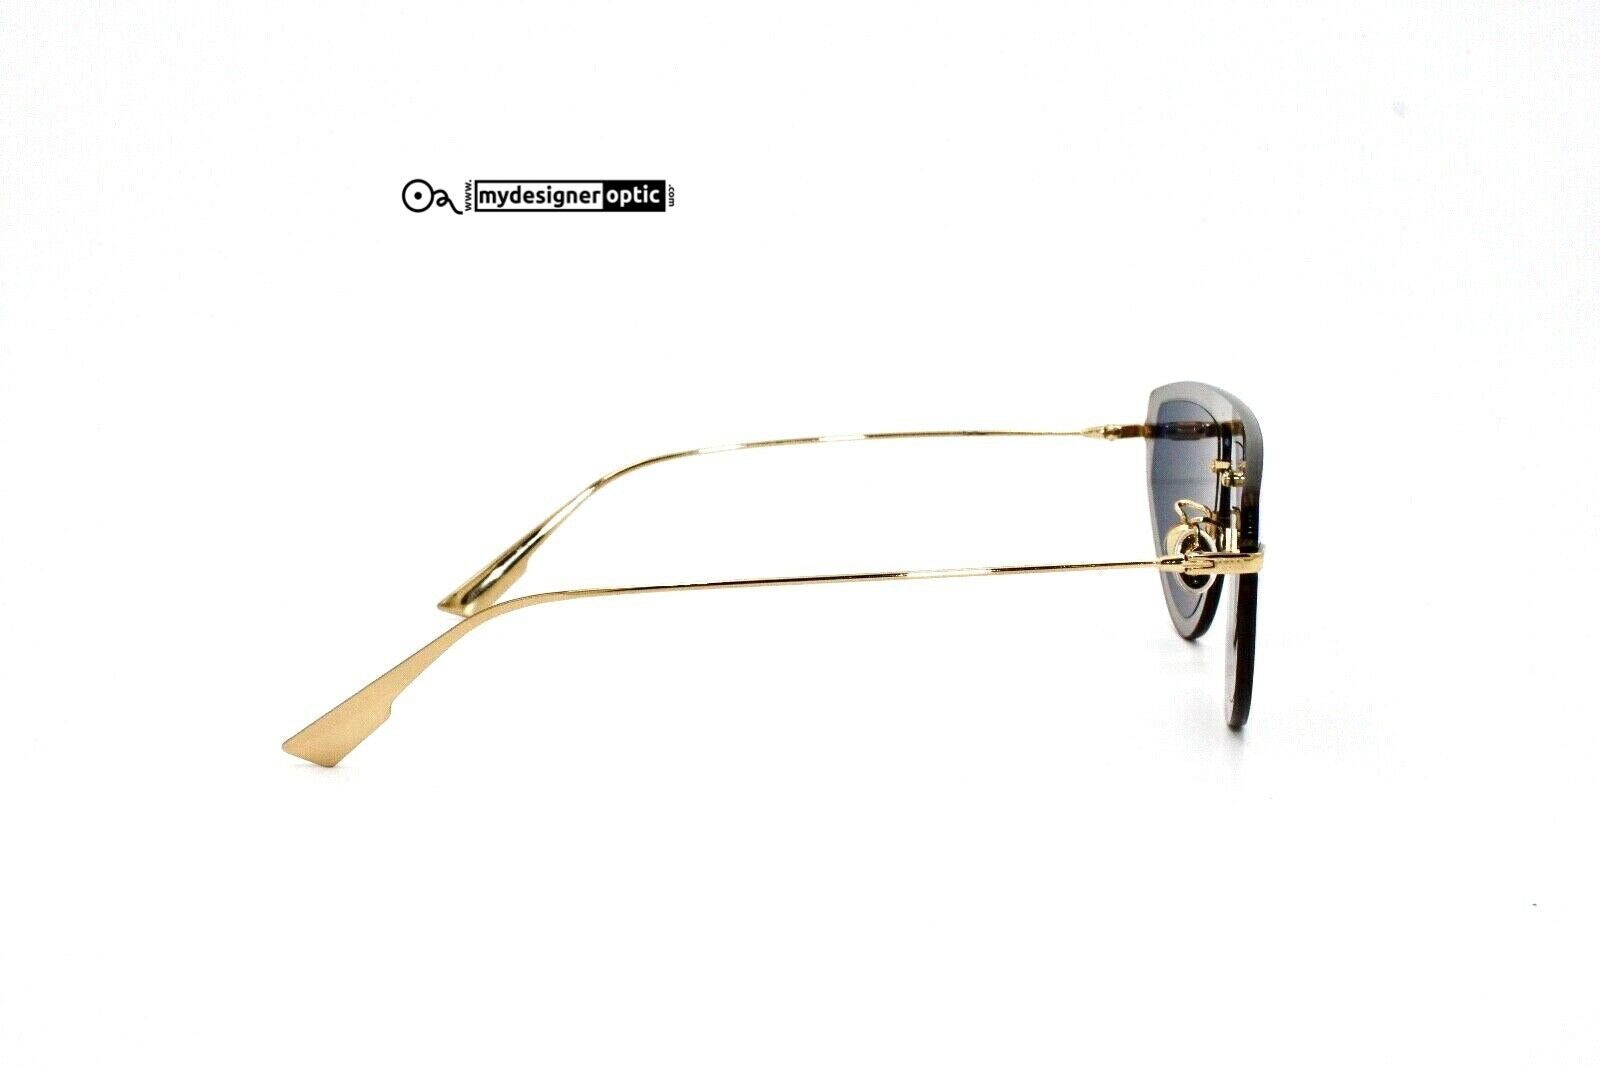 Dior Ultime2 sunglasses LKSA9 56-17-145 Made in Italy (REAL DEAD STOCK) - Mydesigneroptic